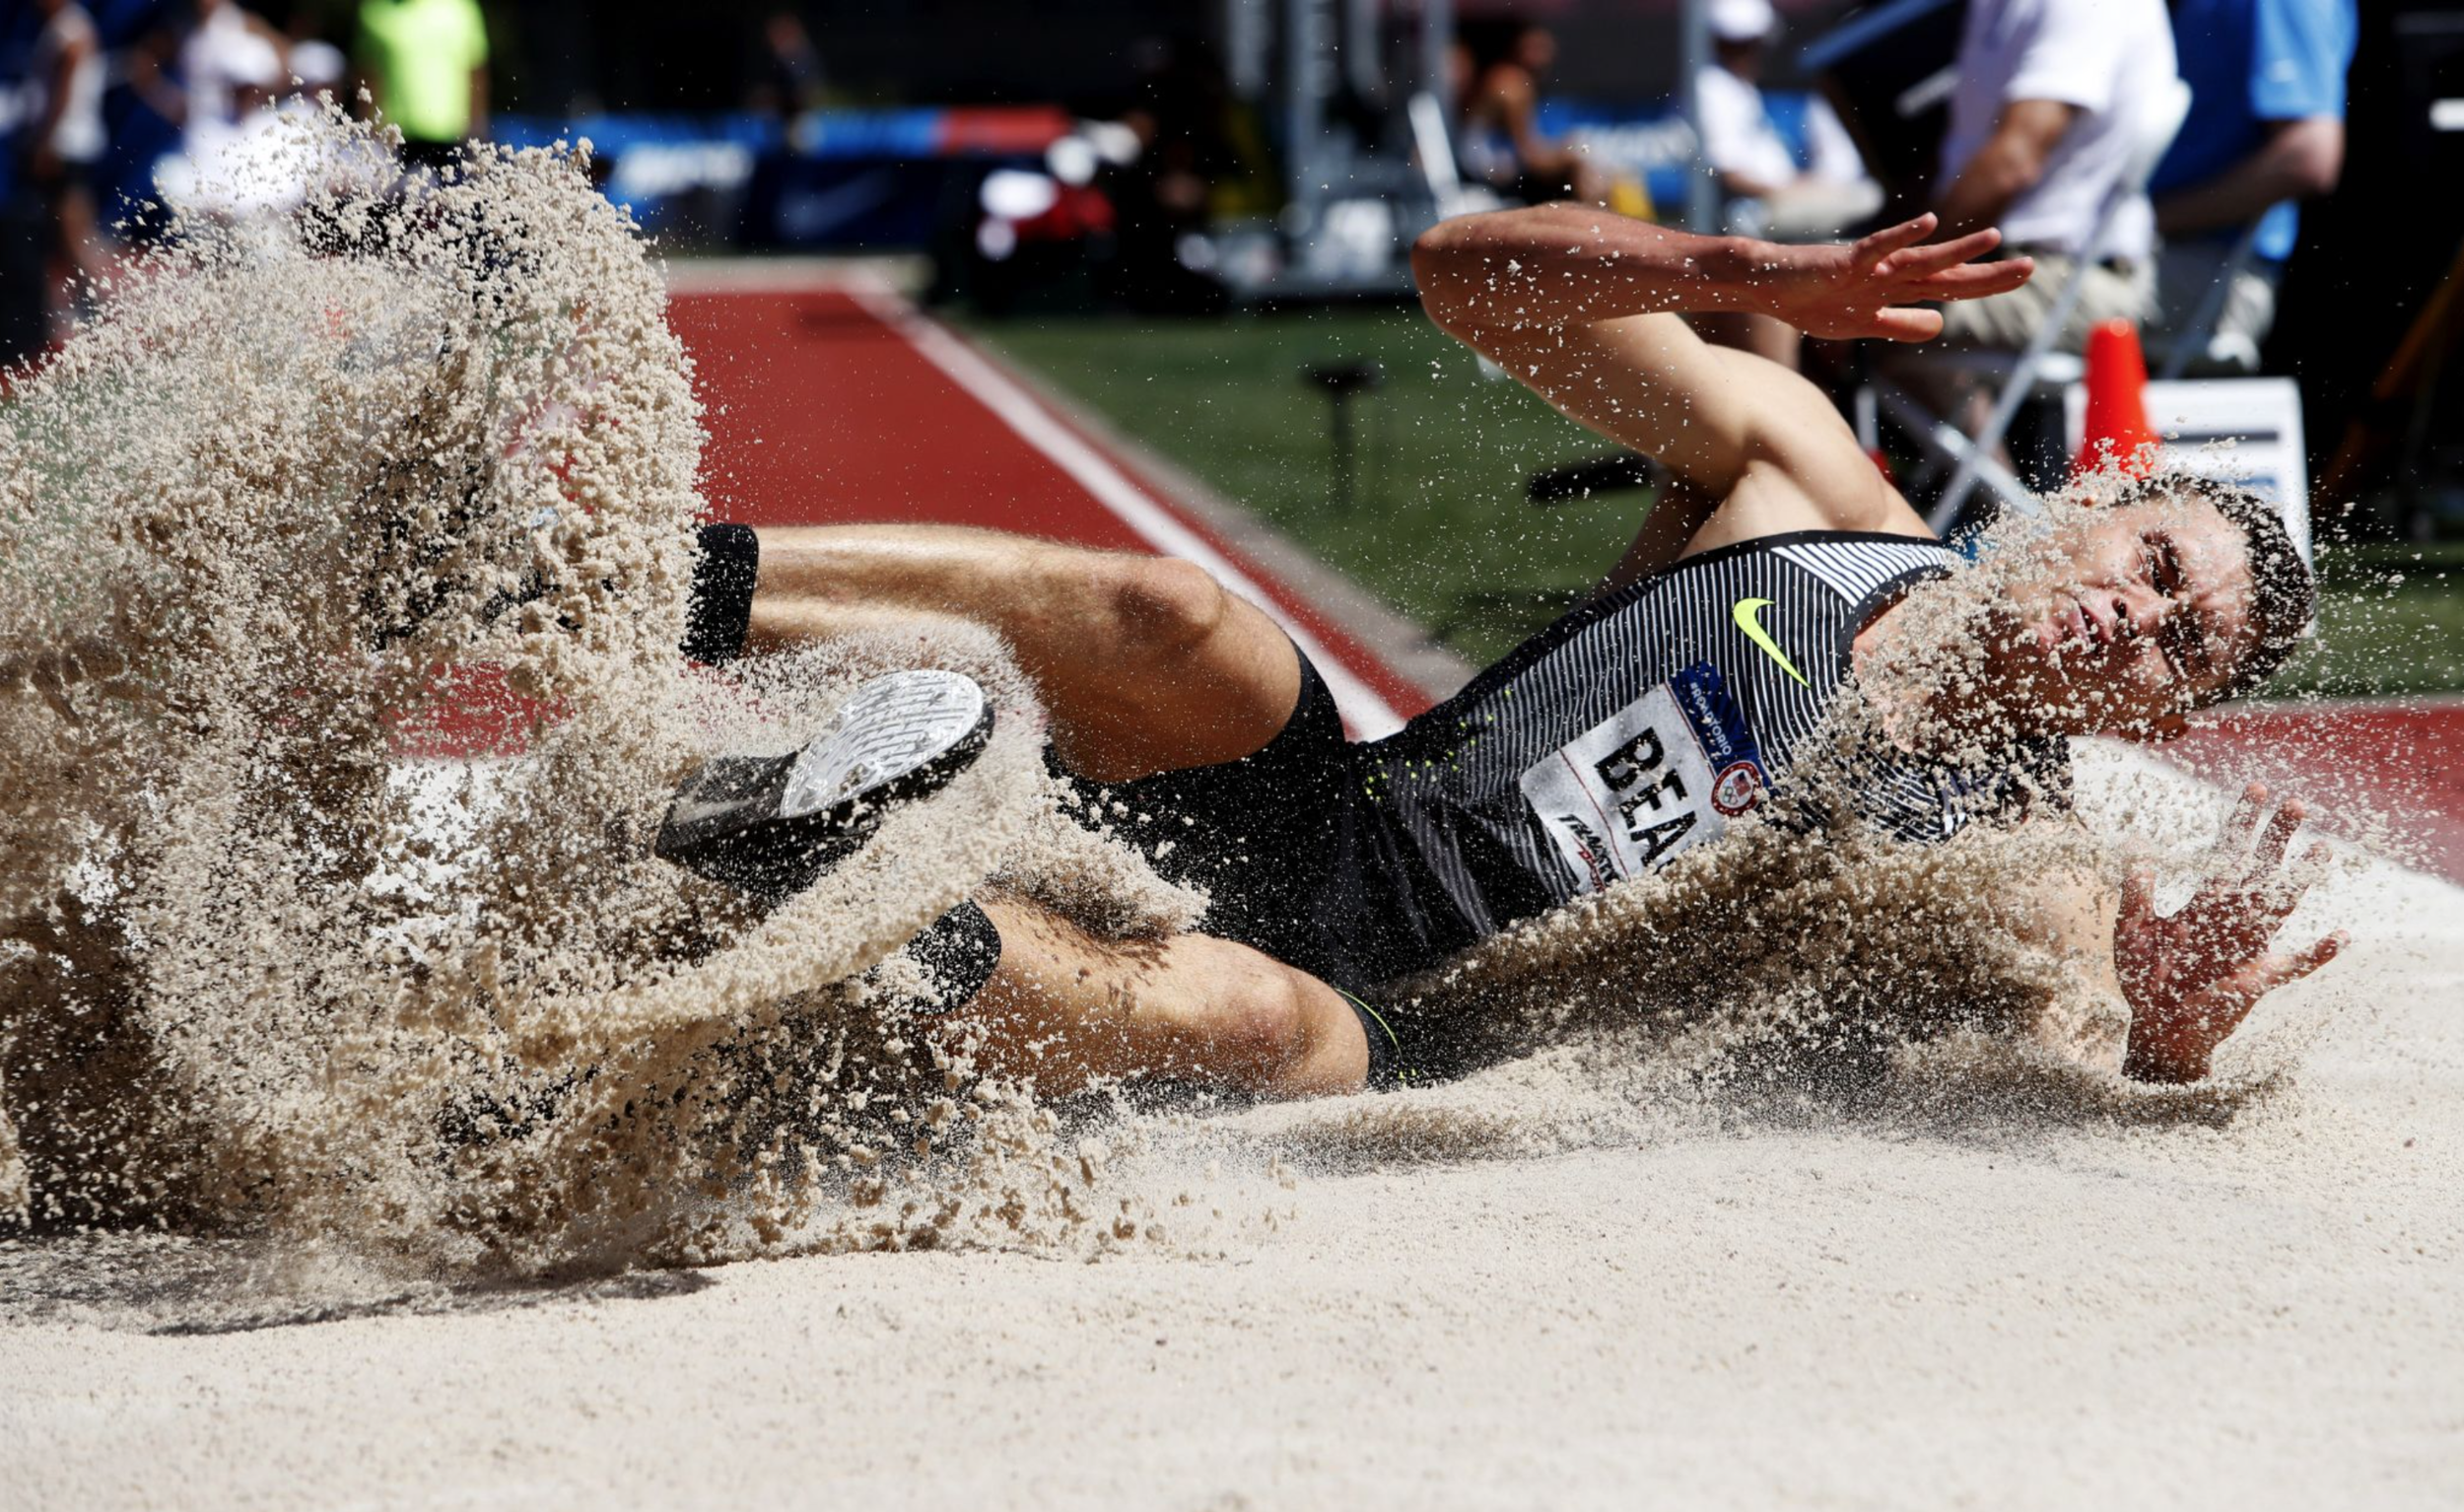 Curtis Beach competed in the decathlon long jump. He finished ninth overall in the decathlon.